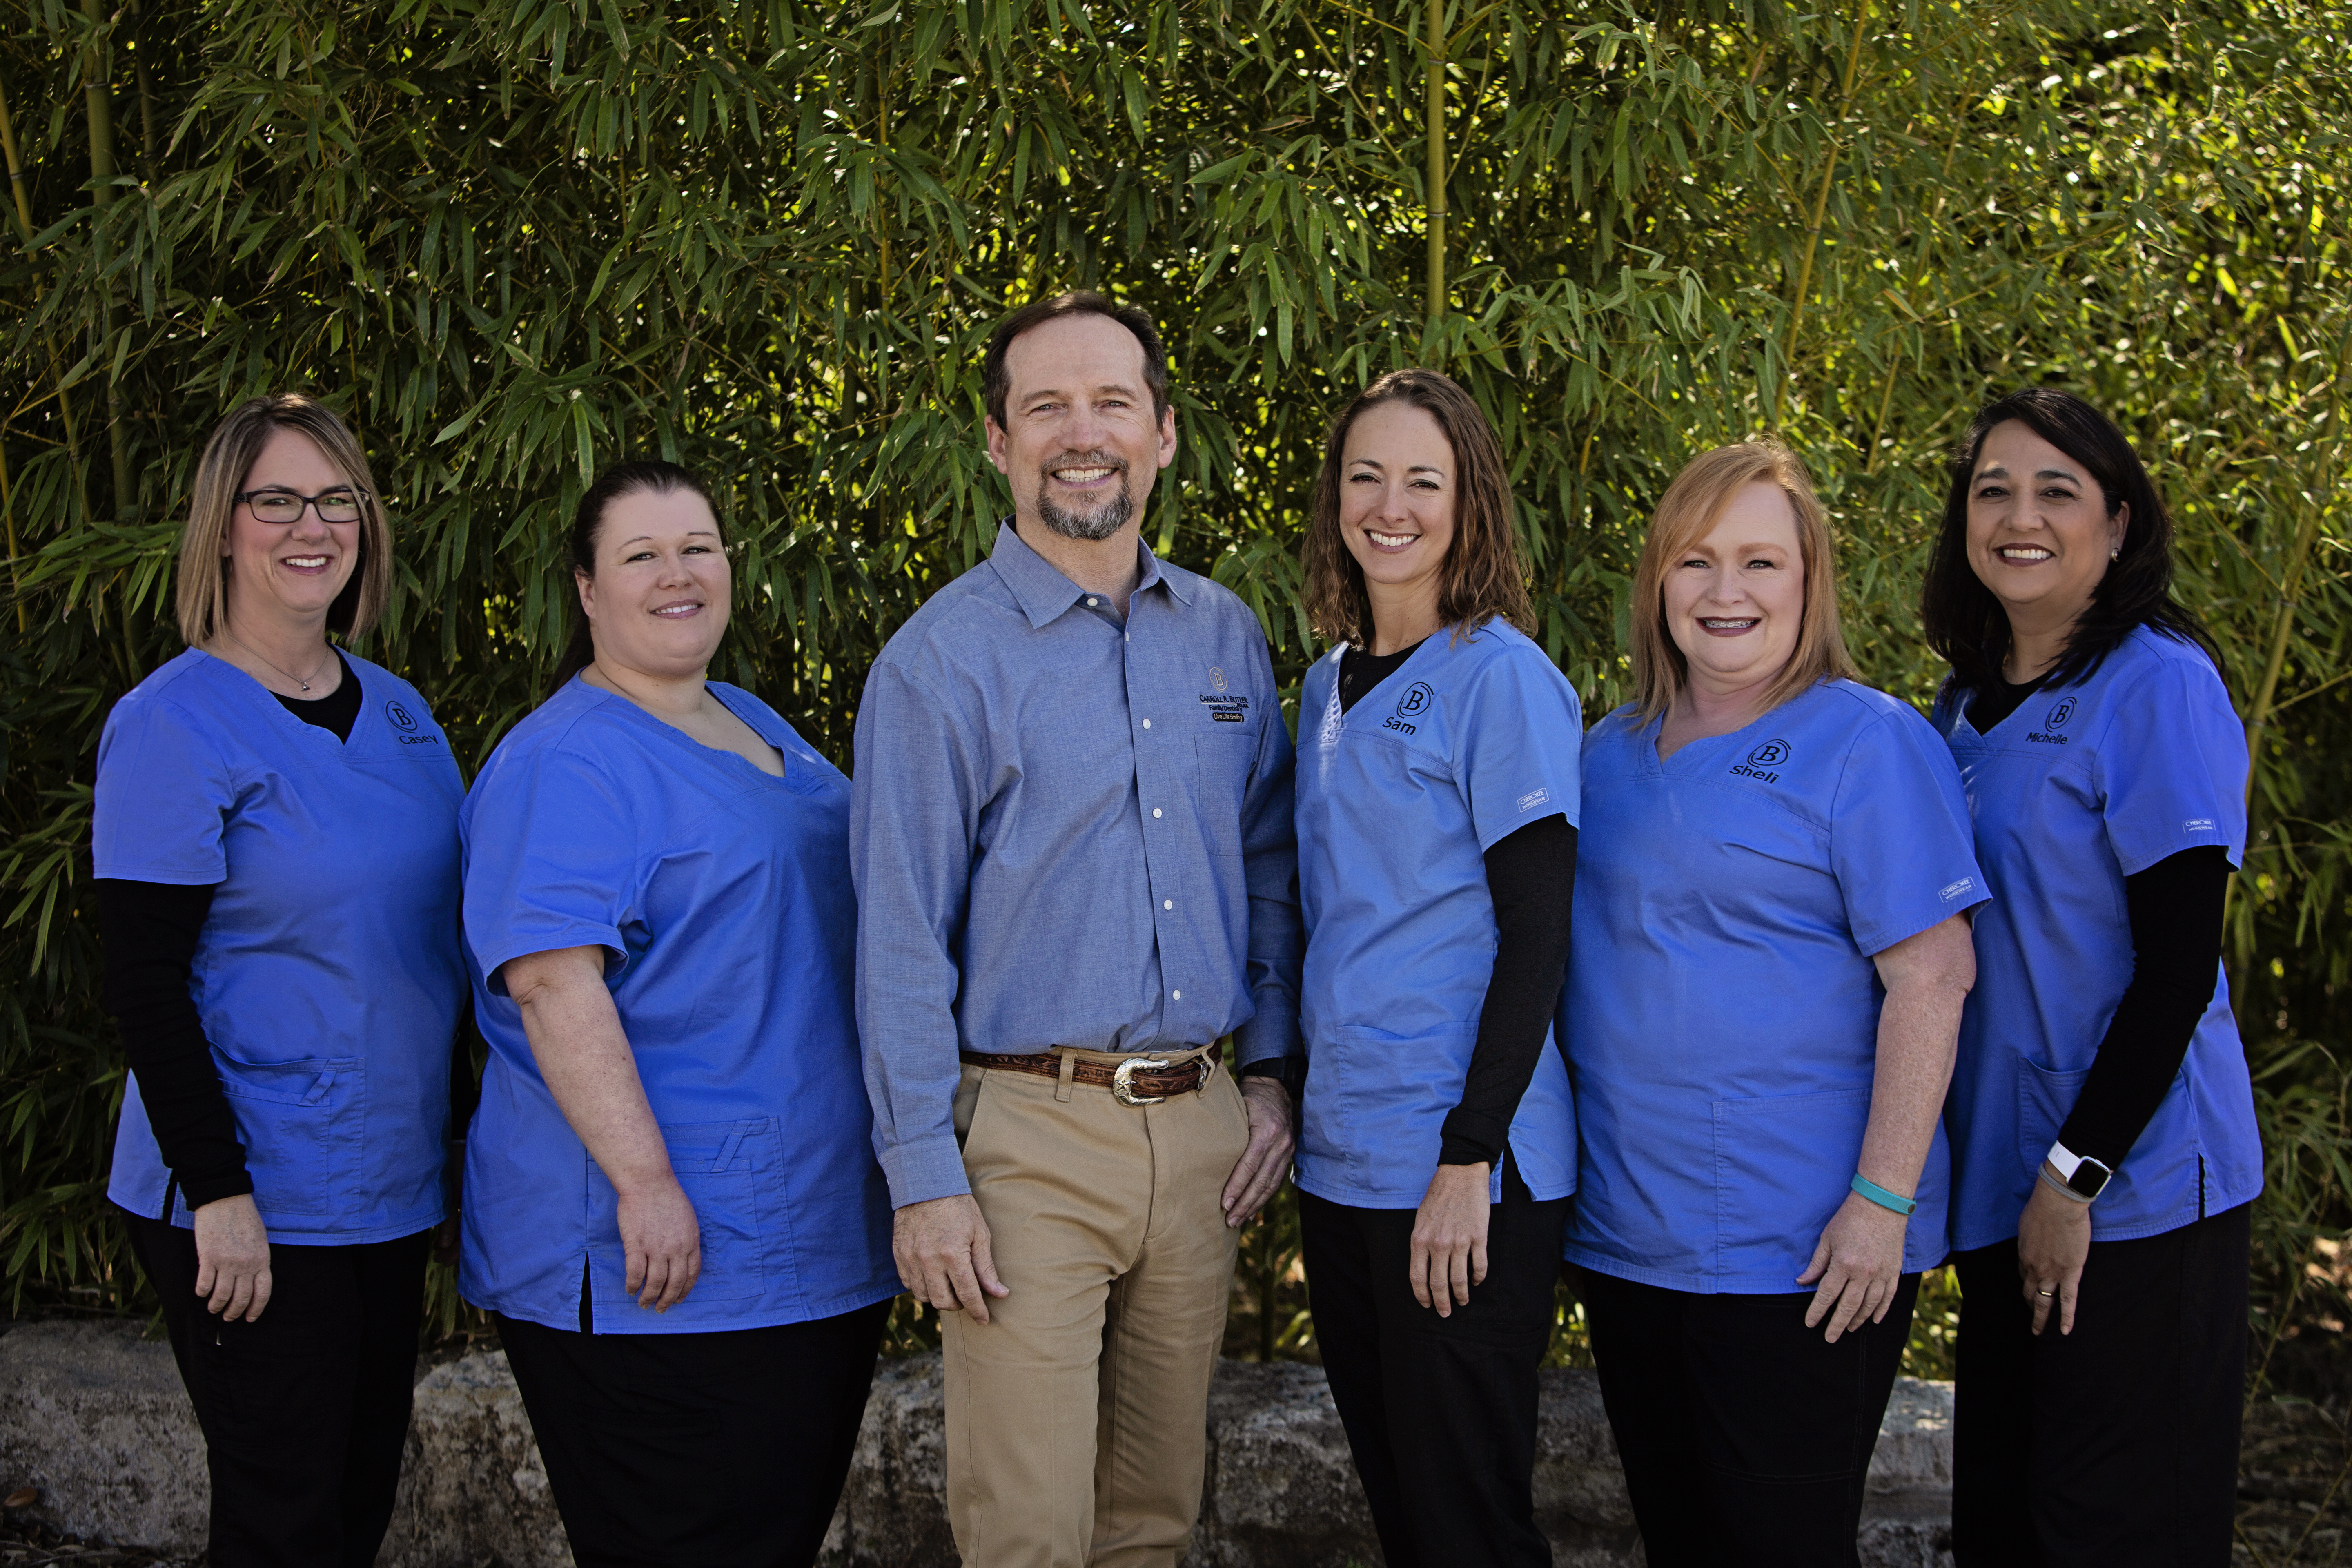 Carroll R. Butler DDS reviews | Cosmetic Dentists at 321 W Water St - Kerrville TX